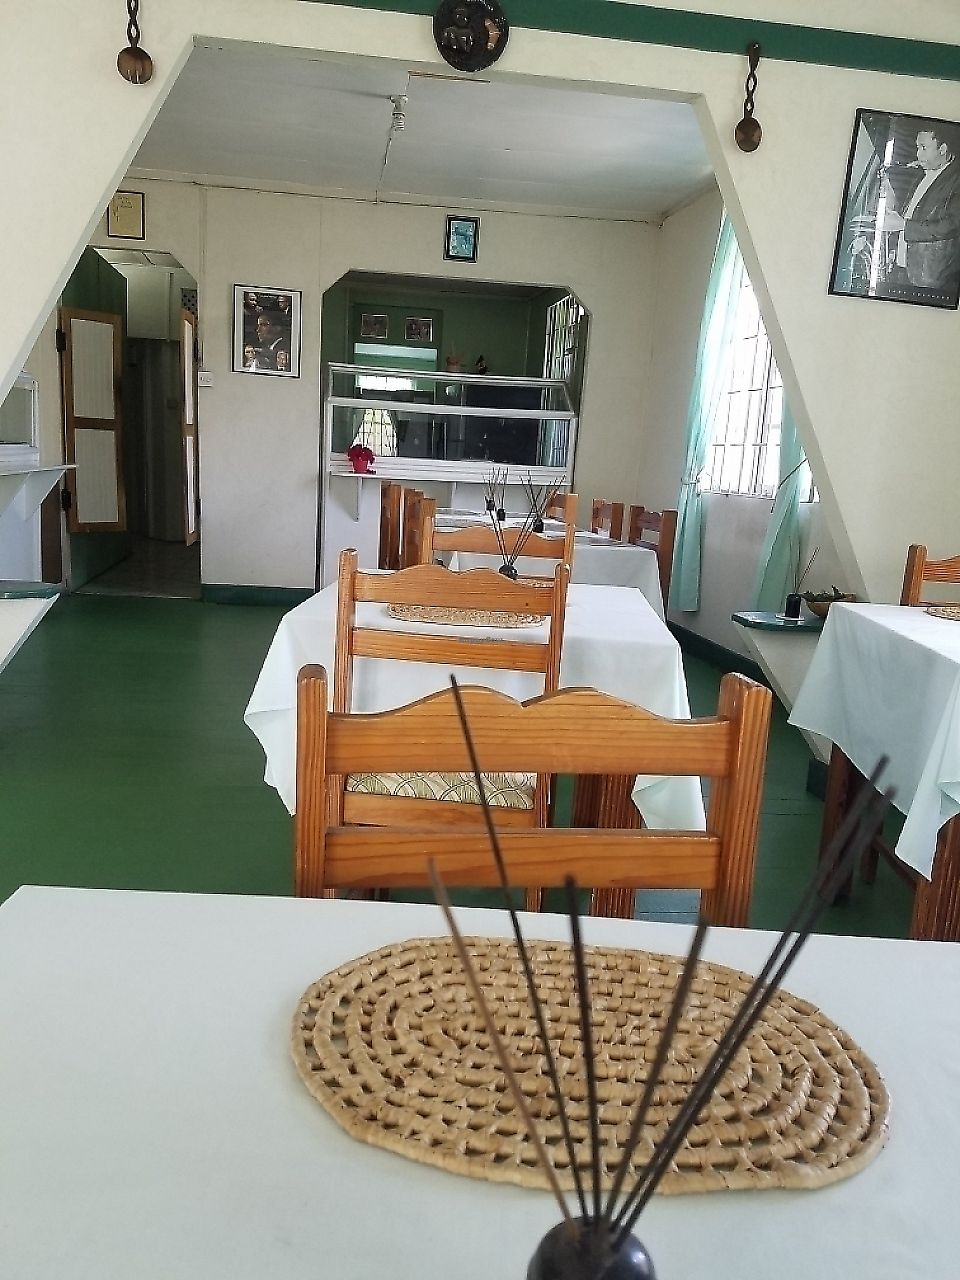 """Photo of Vegan Cottage  by <a href=""""/members/profile/VanessaLee13"""">VanessaLee13</a> <br/>Inside <br/> March 10, 2017  - <a href='/contact/abuse/image/22258/274467'>Report</a>"""